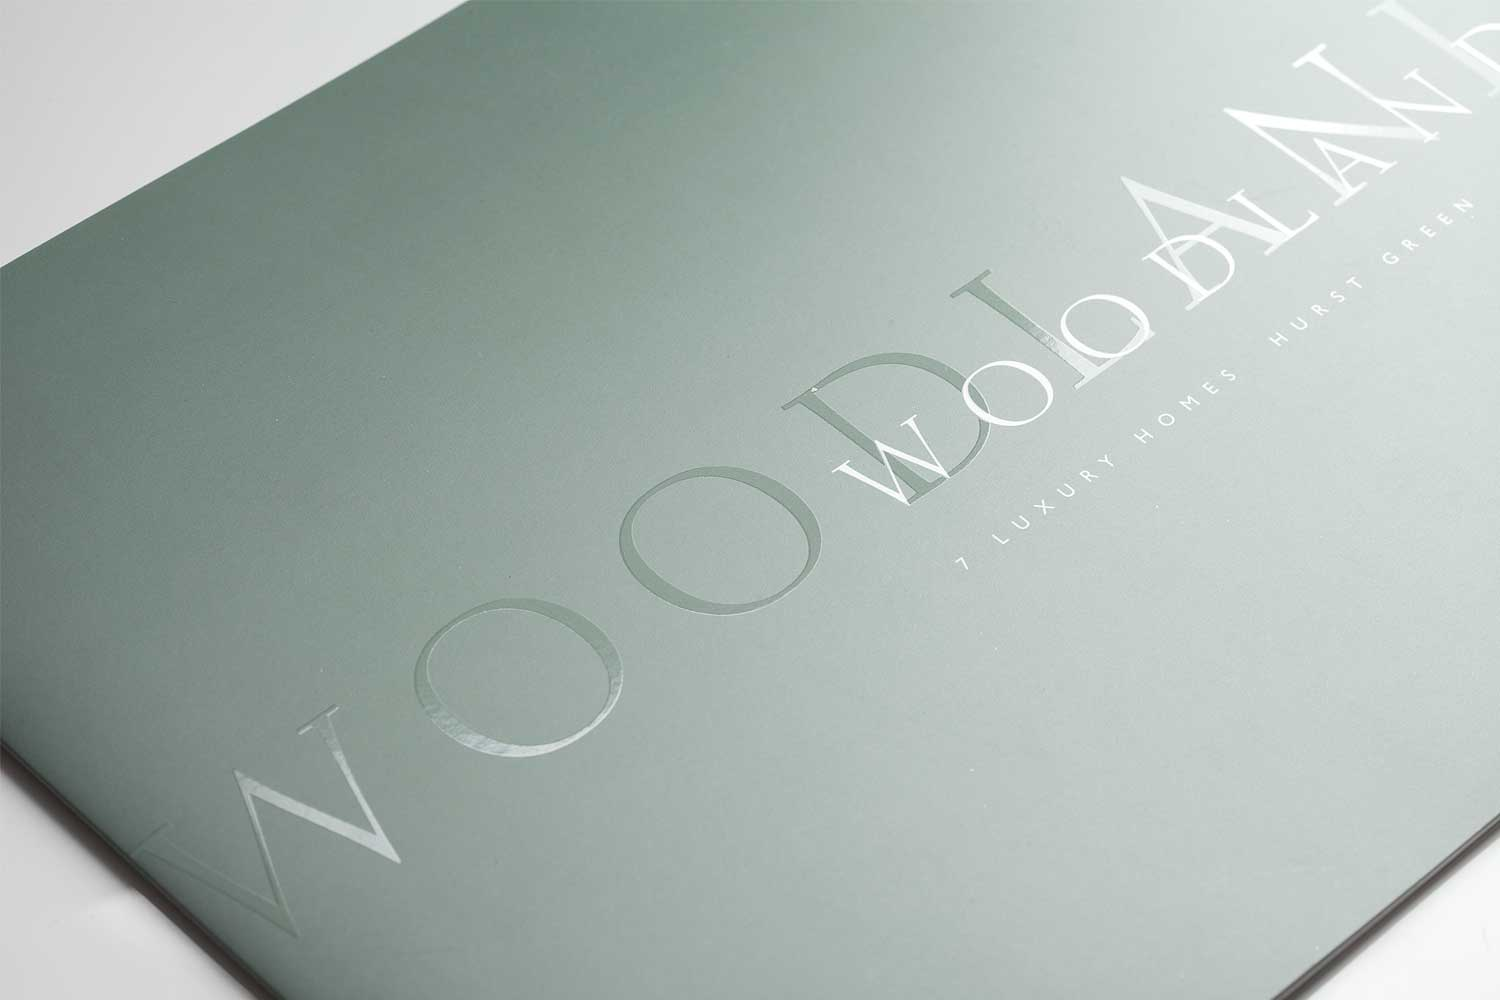 Property brochure design for a luxury property development in Sussex